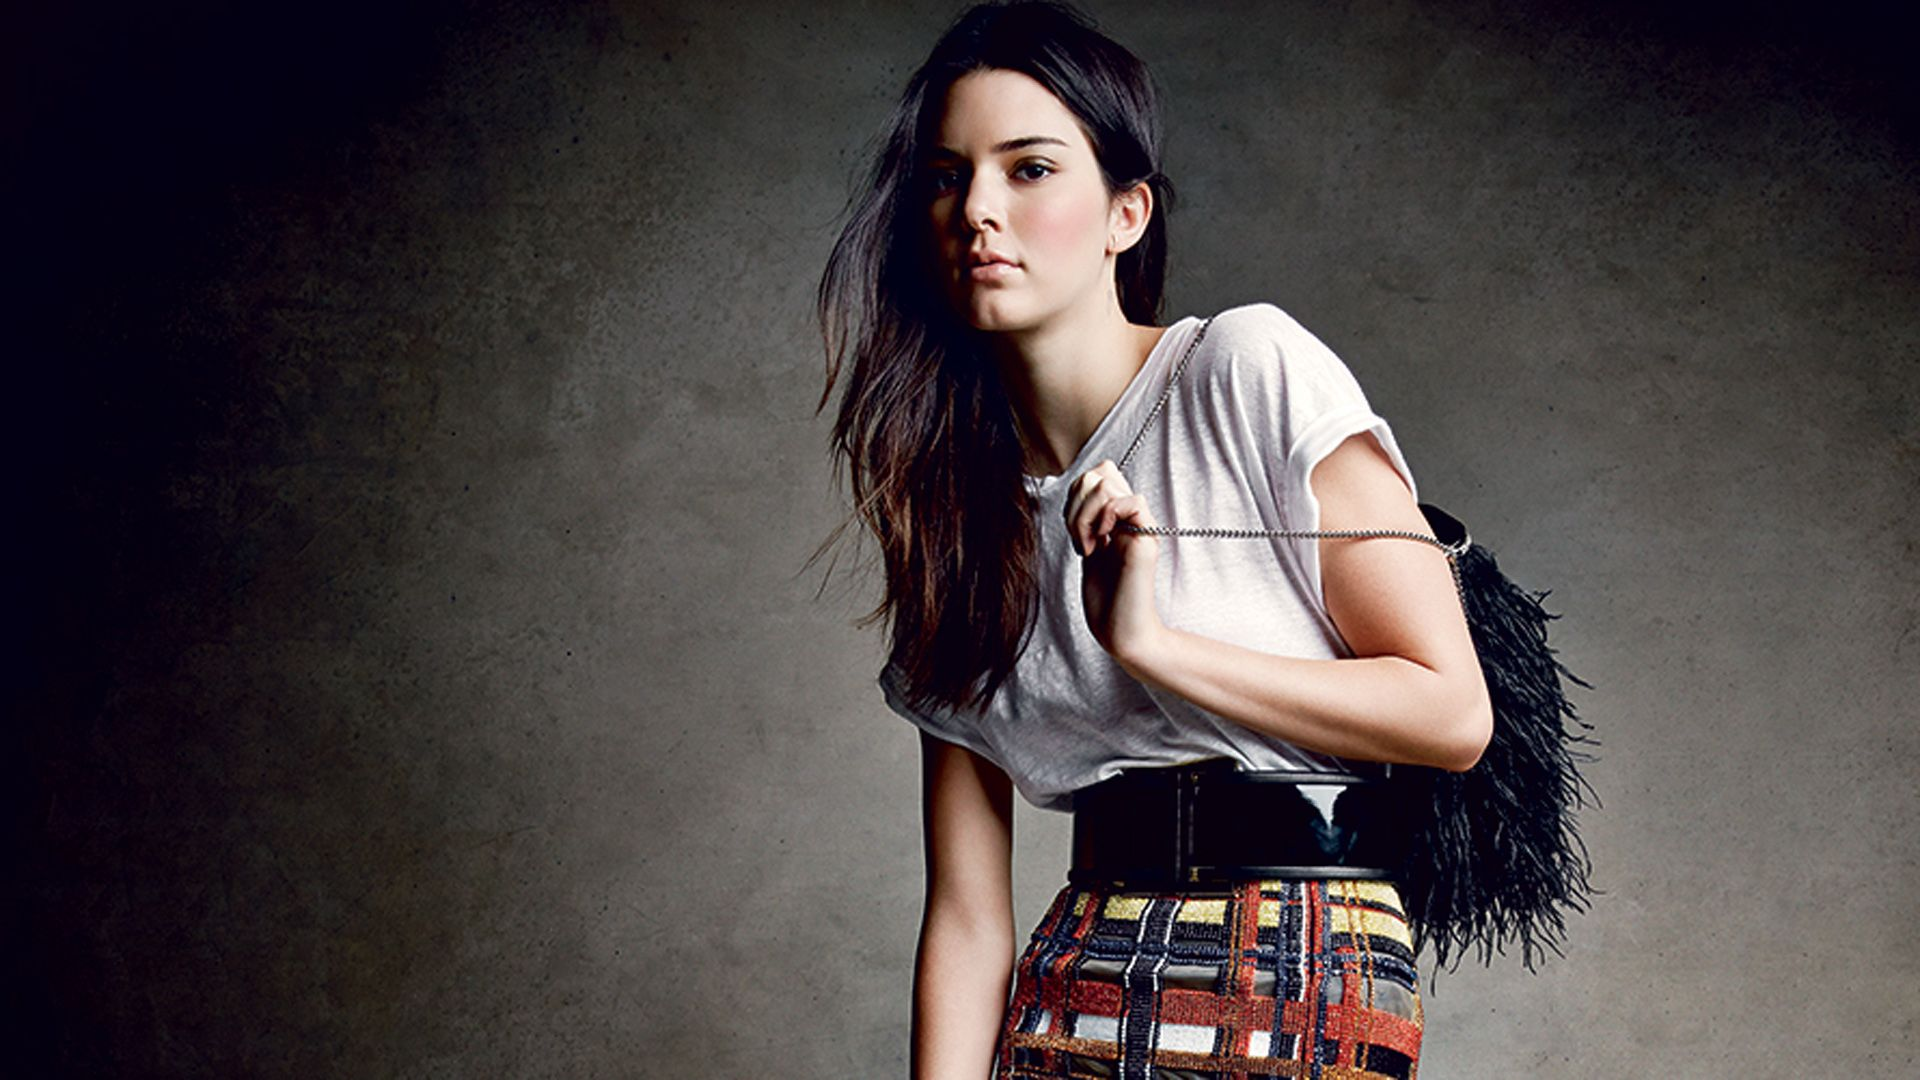 Kendall Jenner HD Backgrounds 9 Kendall Jenner HD